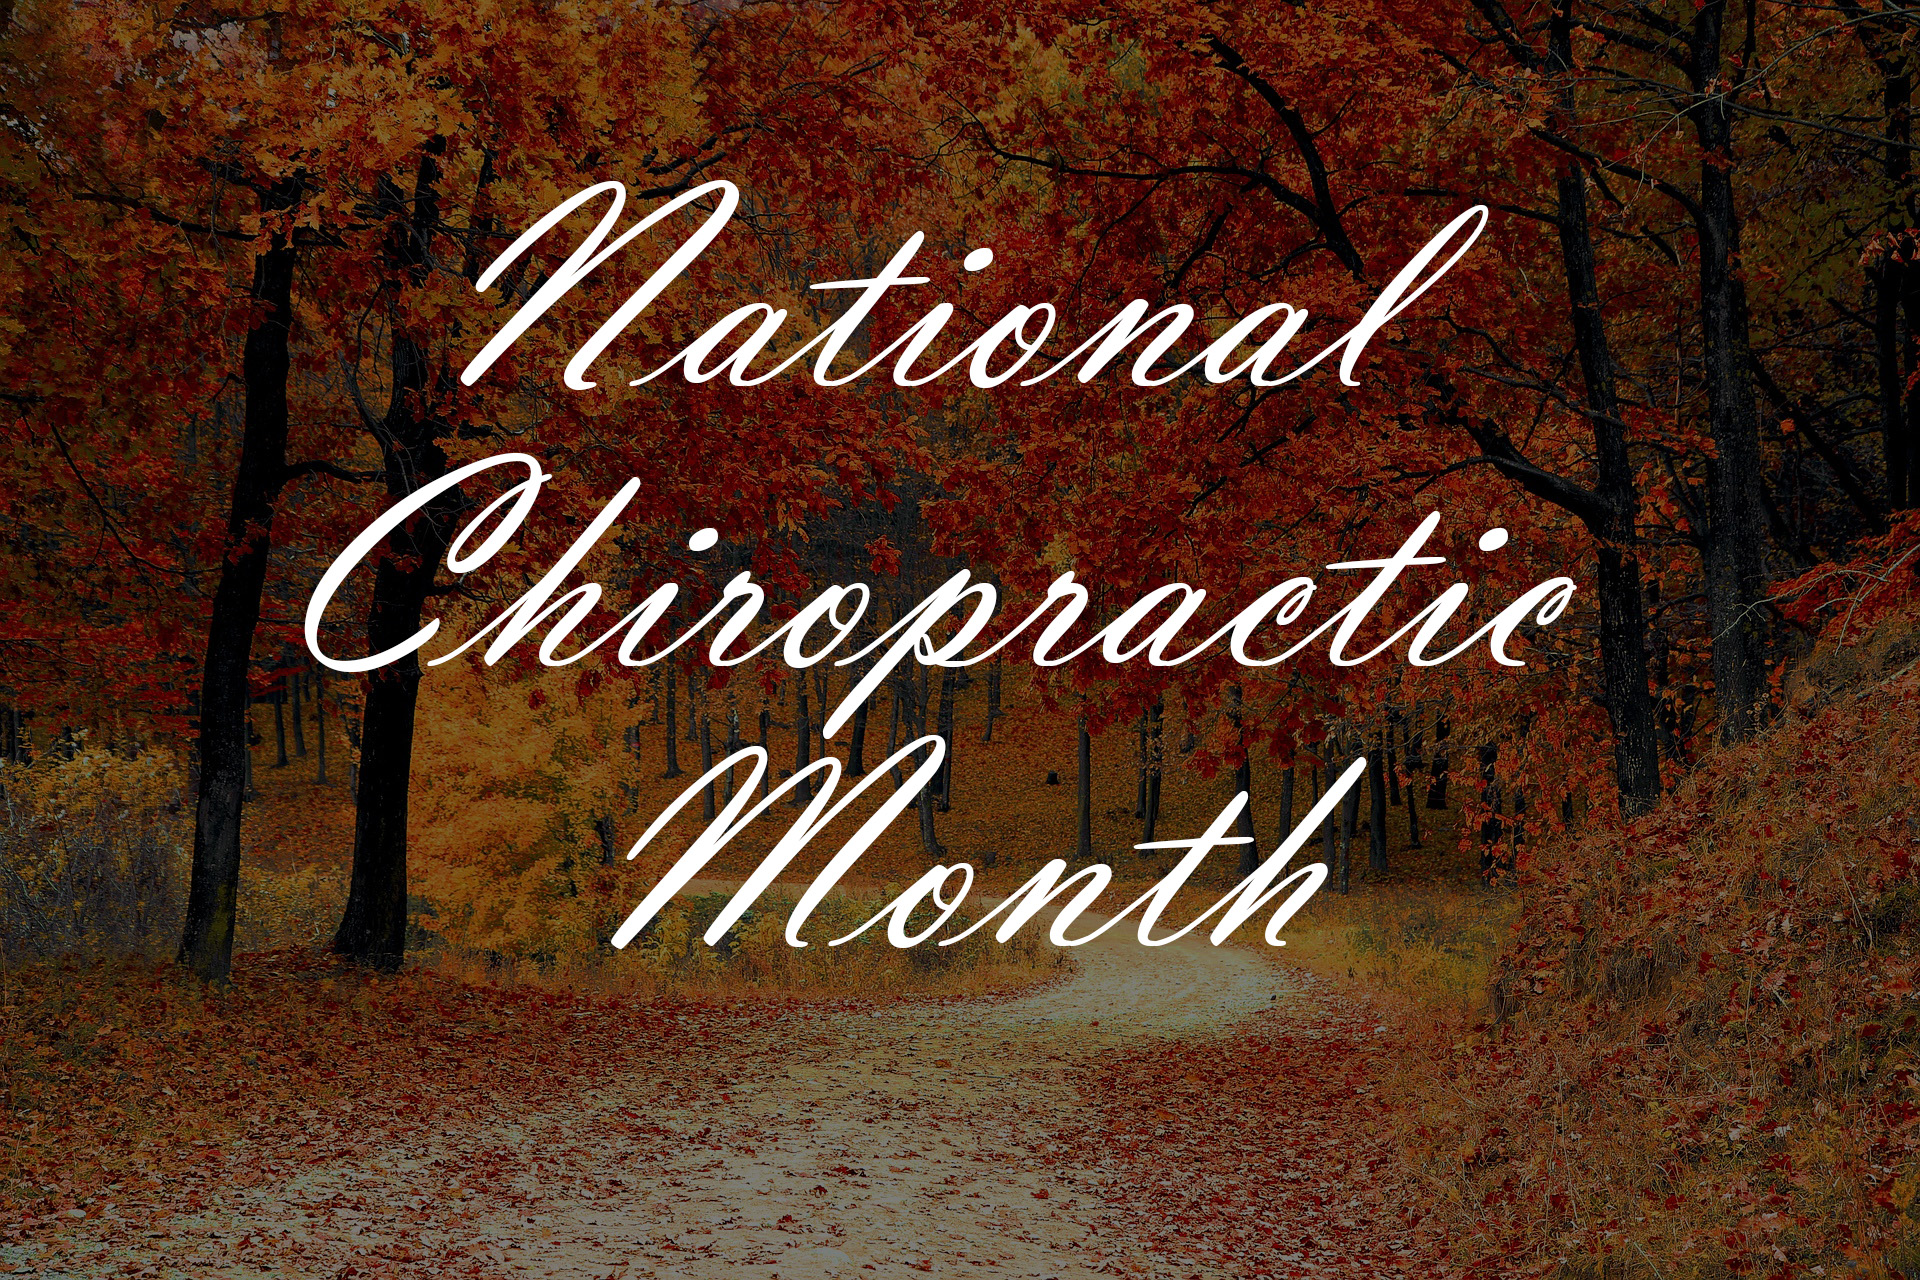 Back Pain in Focus During National Chiropractic Month